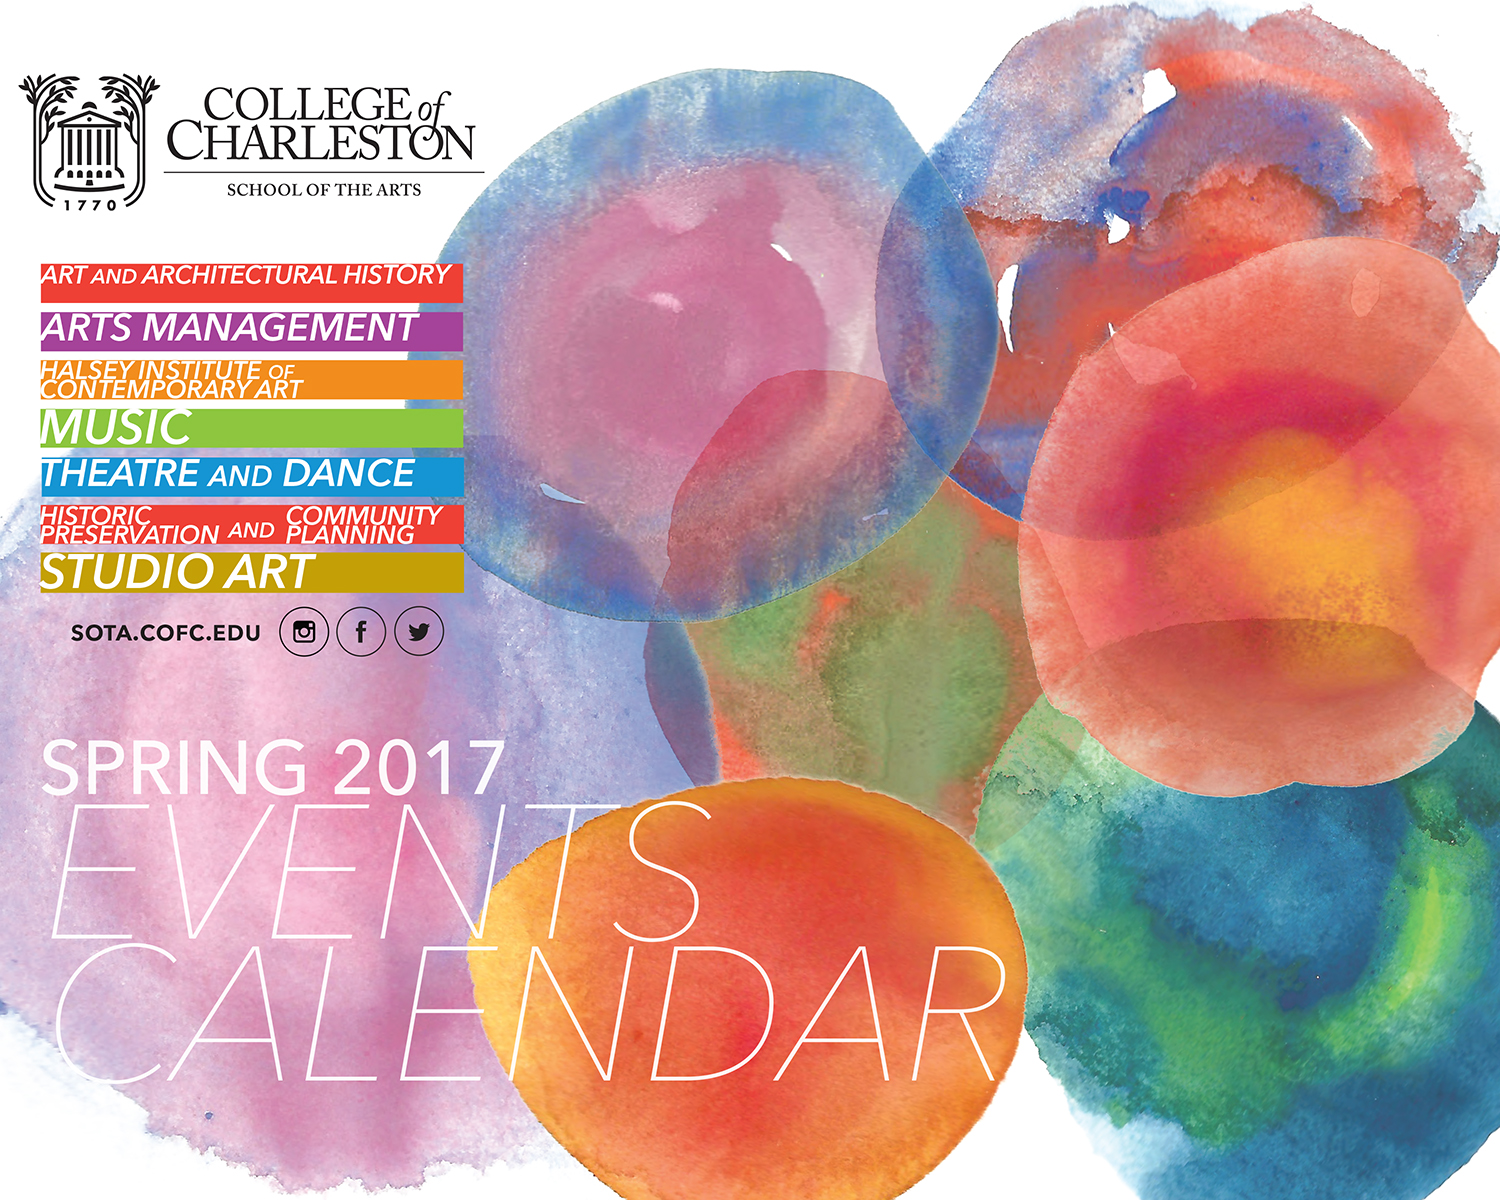 Spring 2017 Arts Events